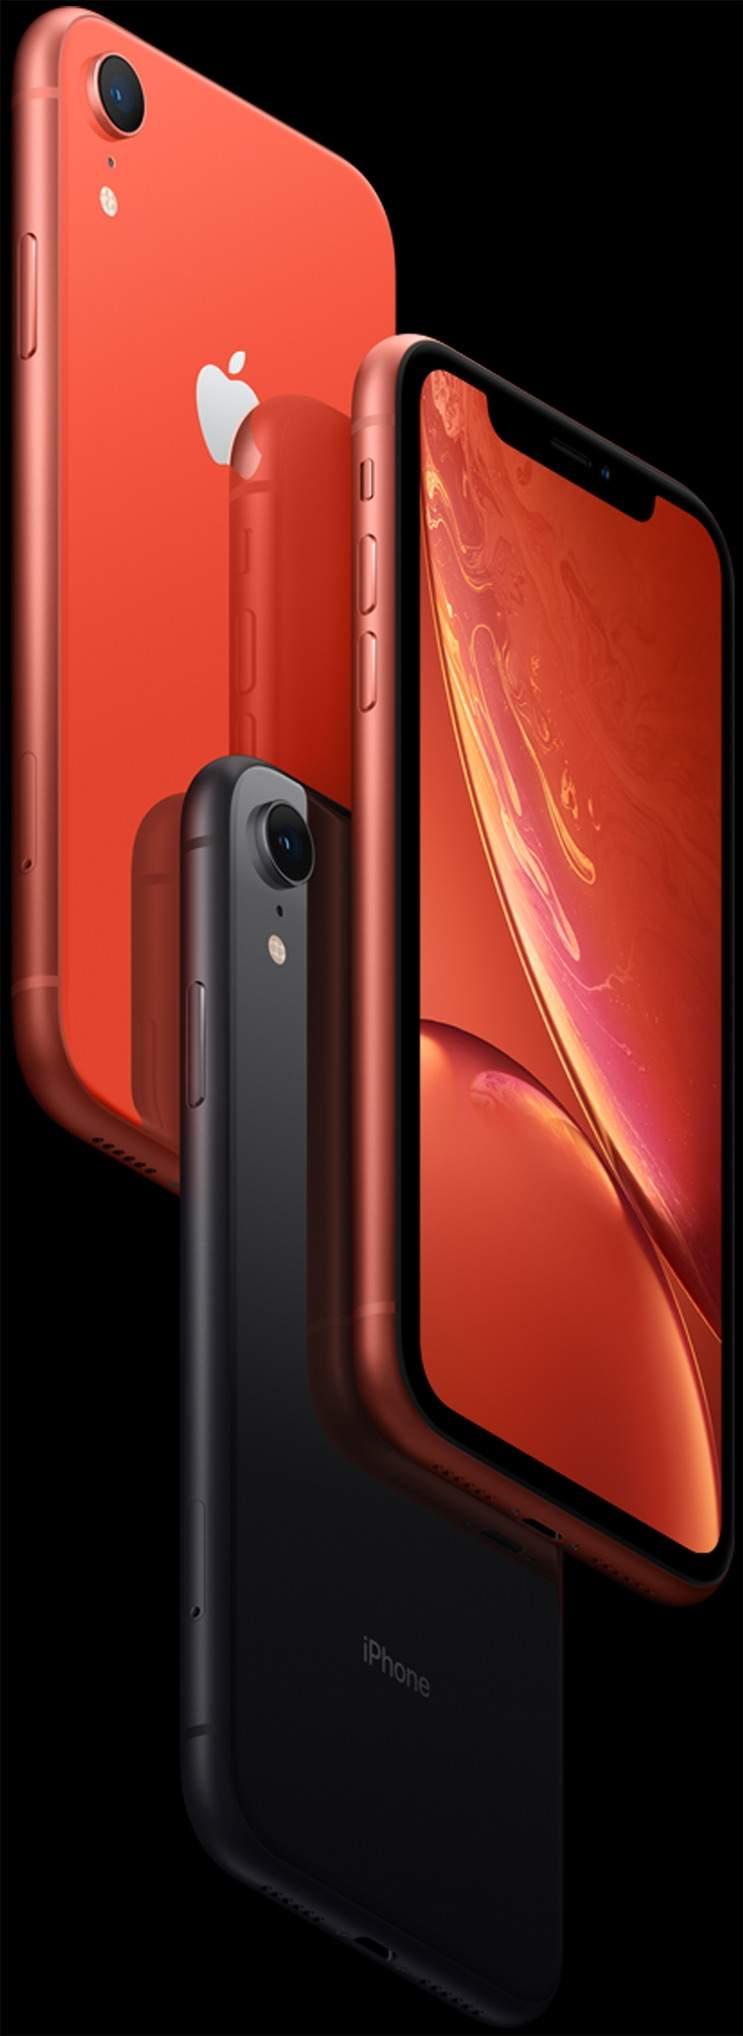 iPhone XR design